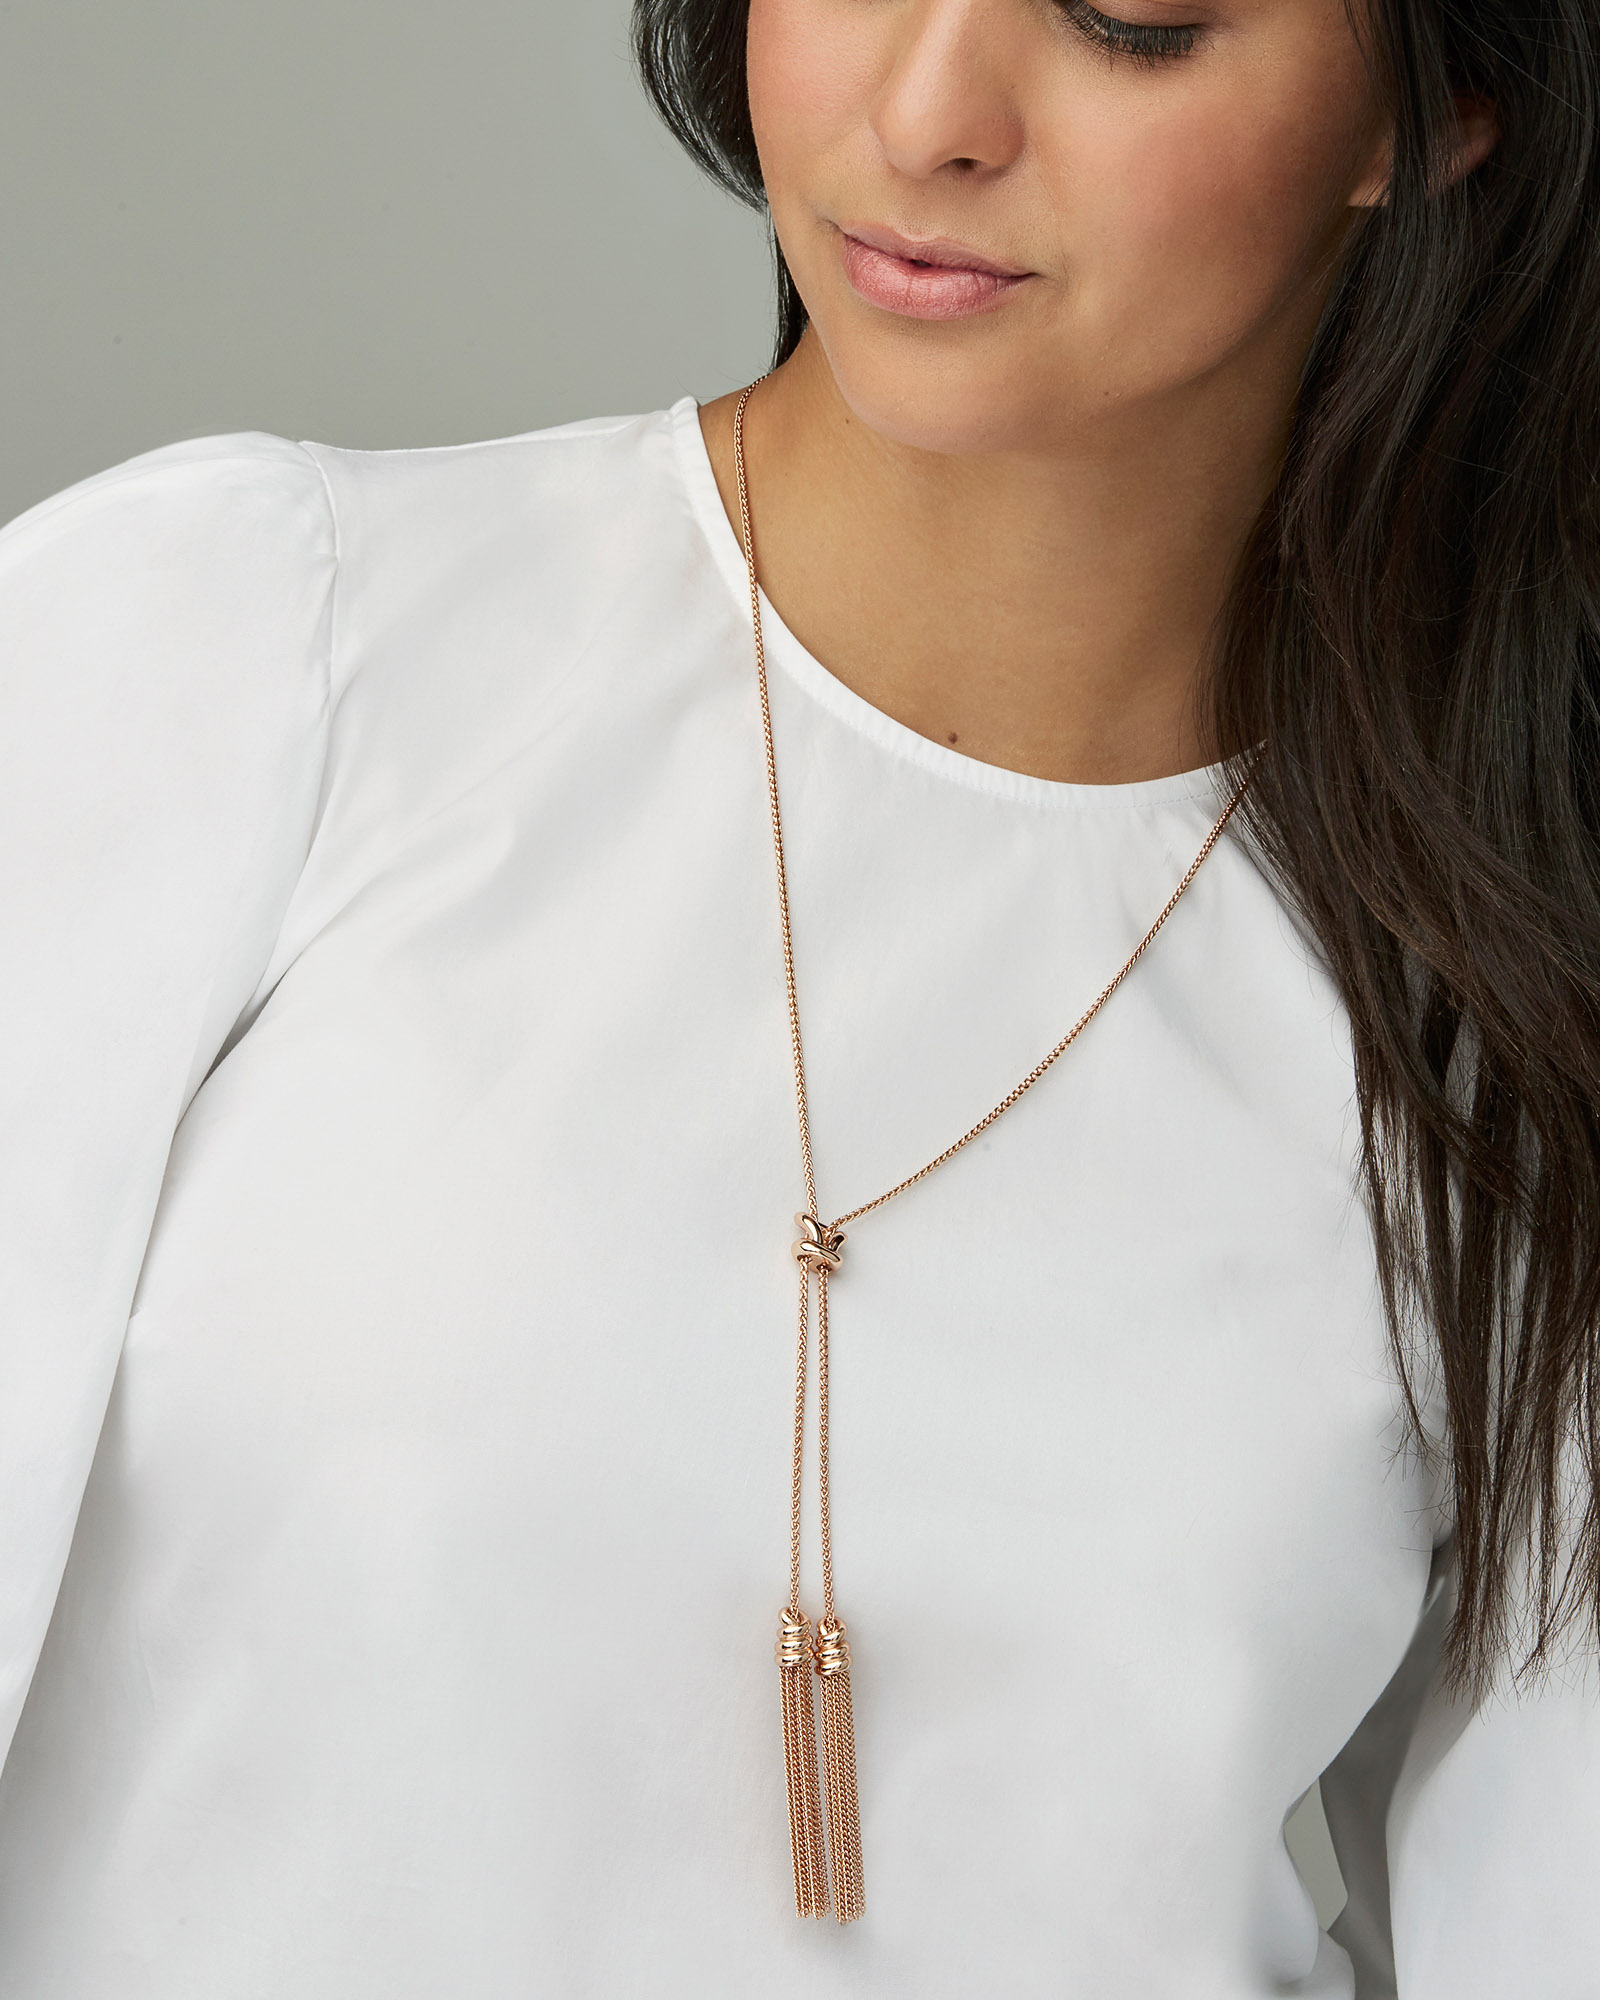 Presleigh Y Necklace